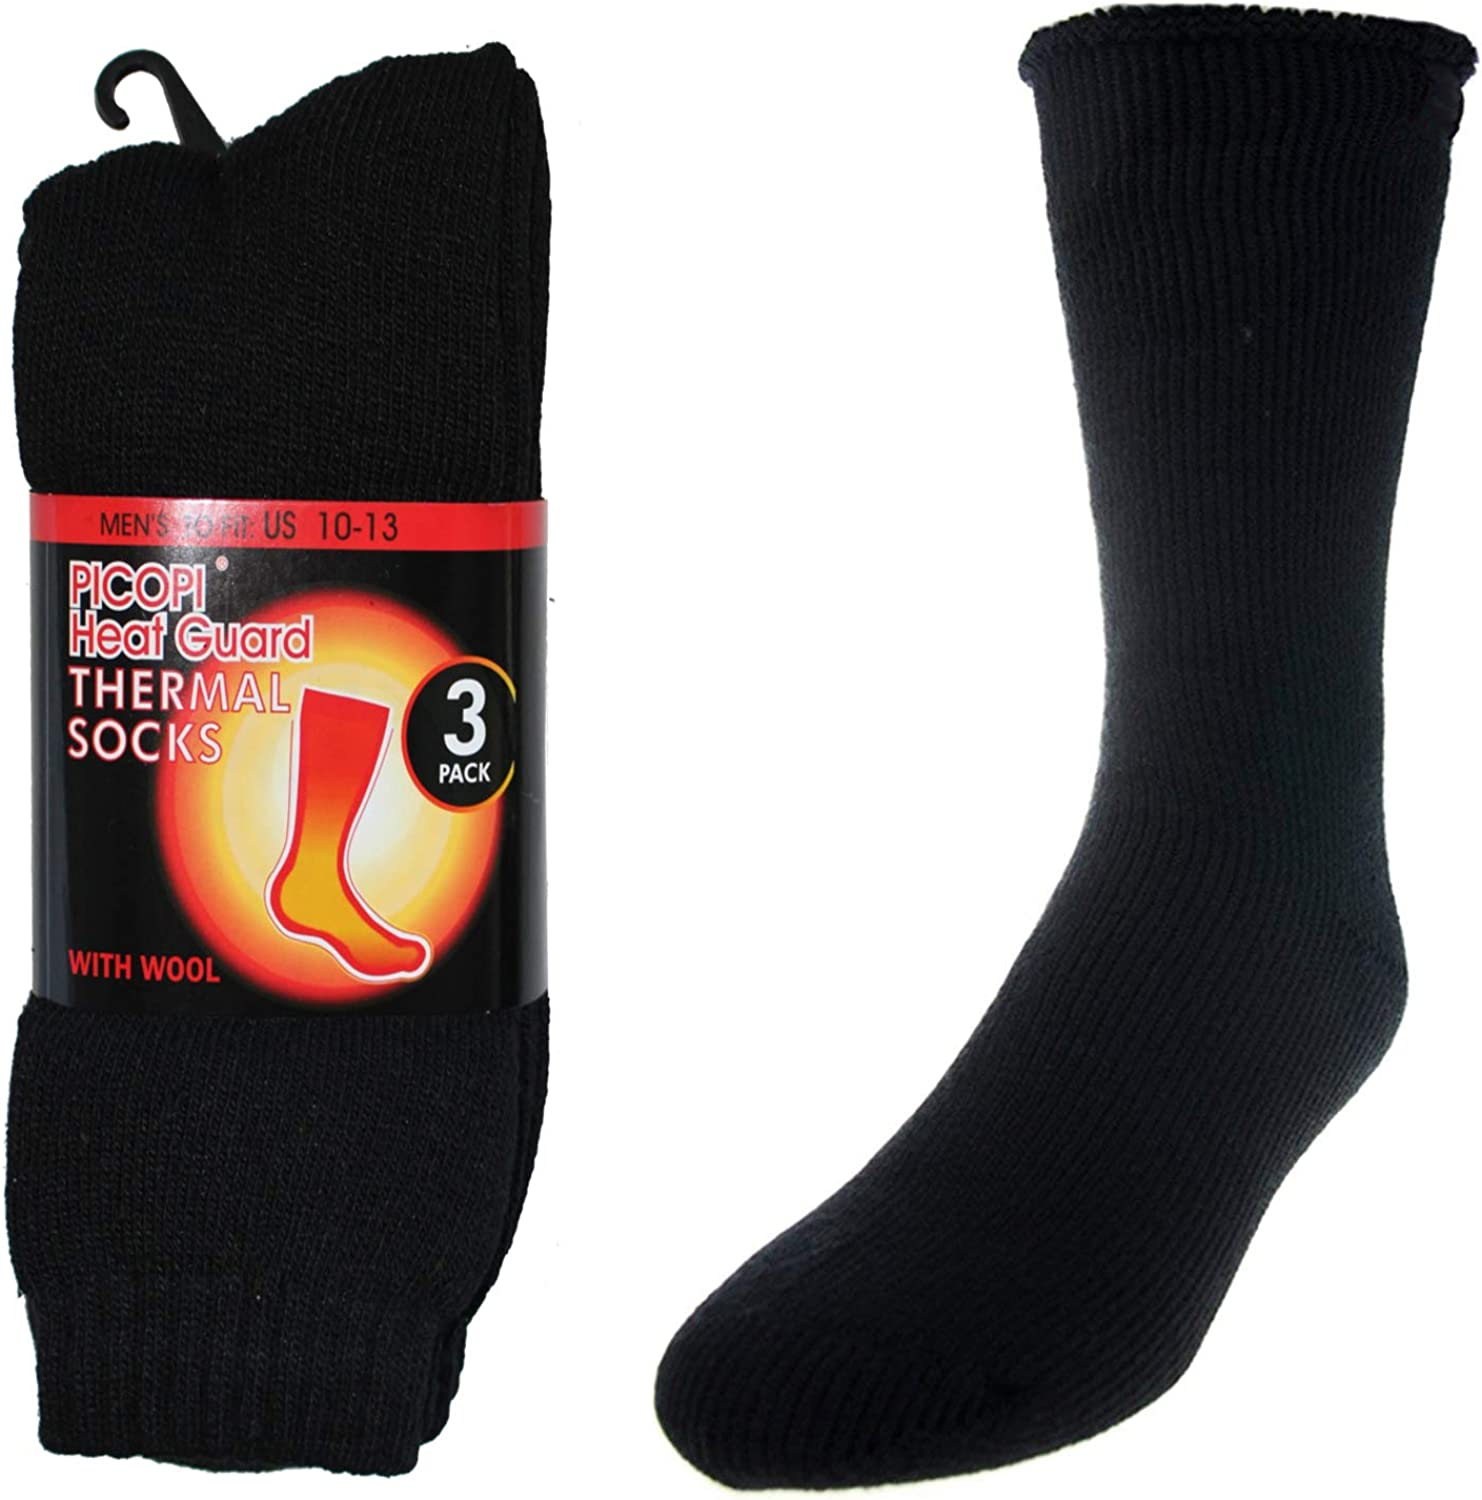 3 Pairs of Thick Heat Trapping Insulated Heated Boot Thermal Socks Pack Warm Winter Crew For Cold Weather